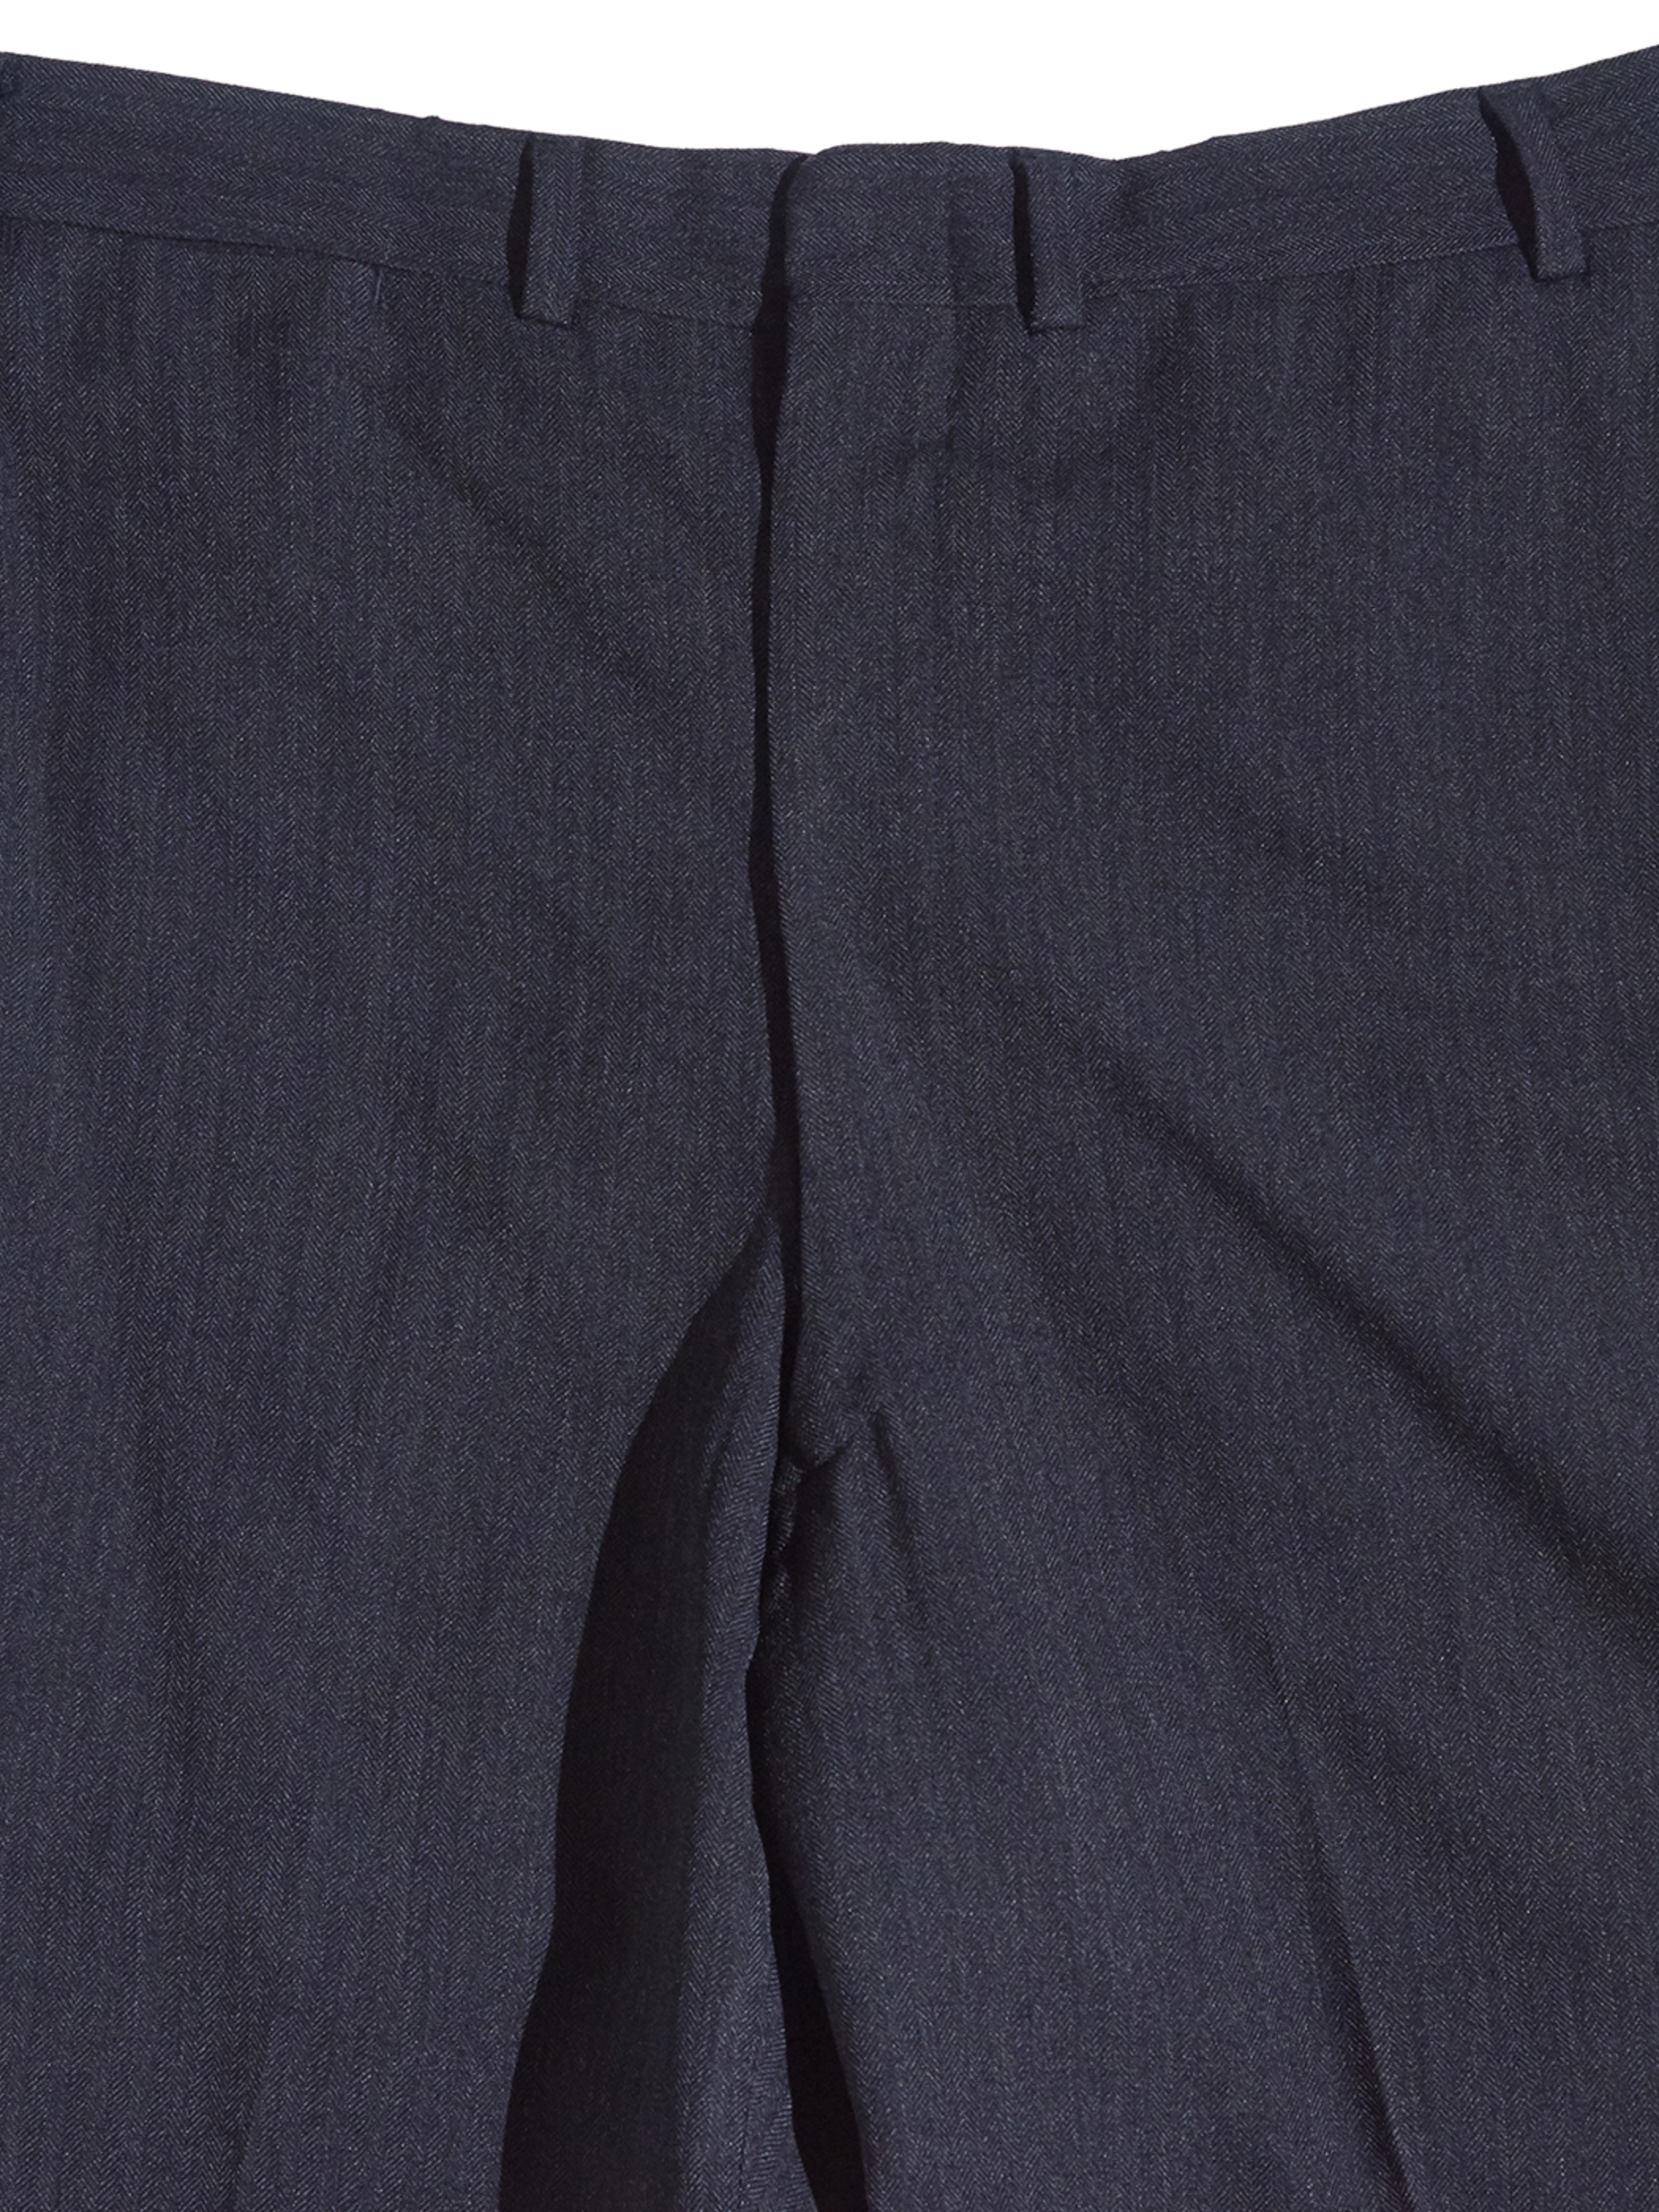 """1960s """"BROOKS BROTHERS"""" 2piece No.1 sack suit -CHACOAL-"""